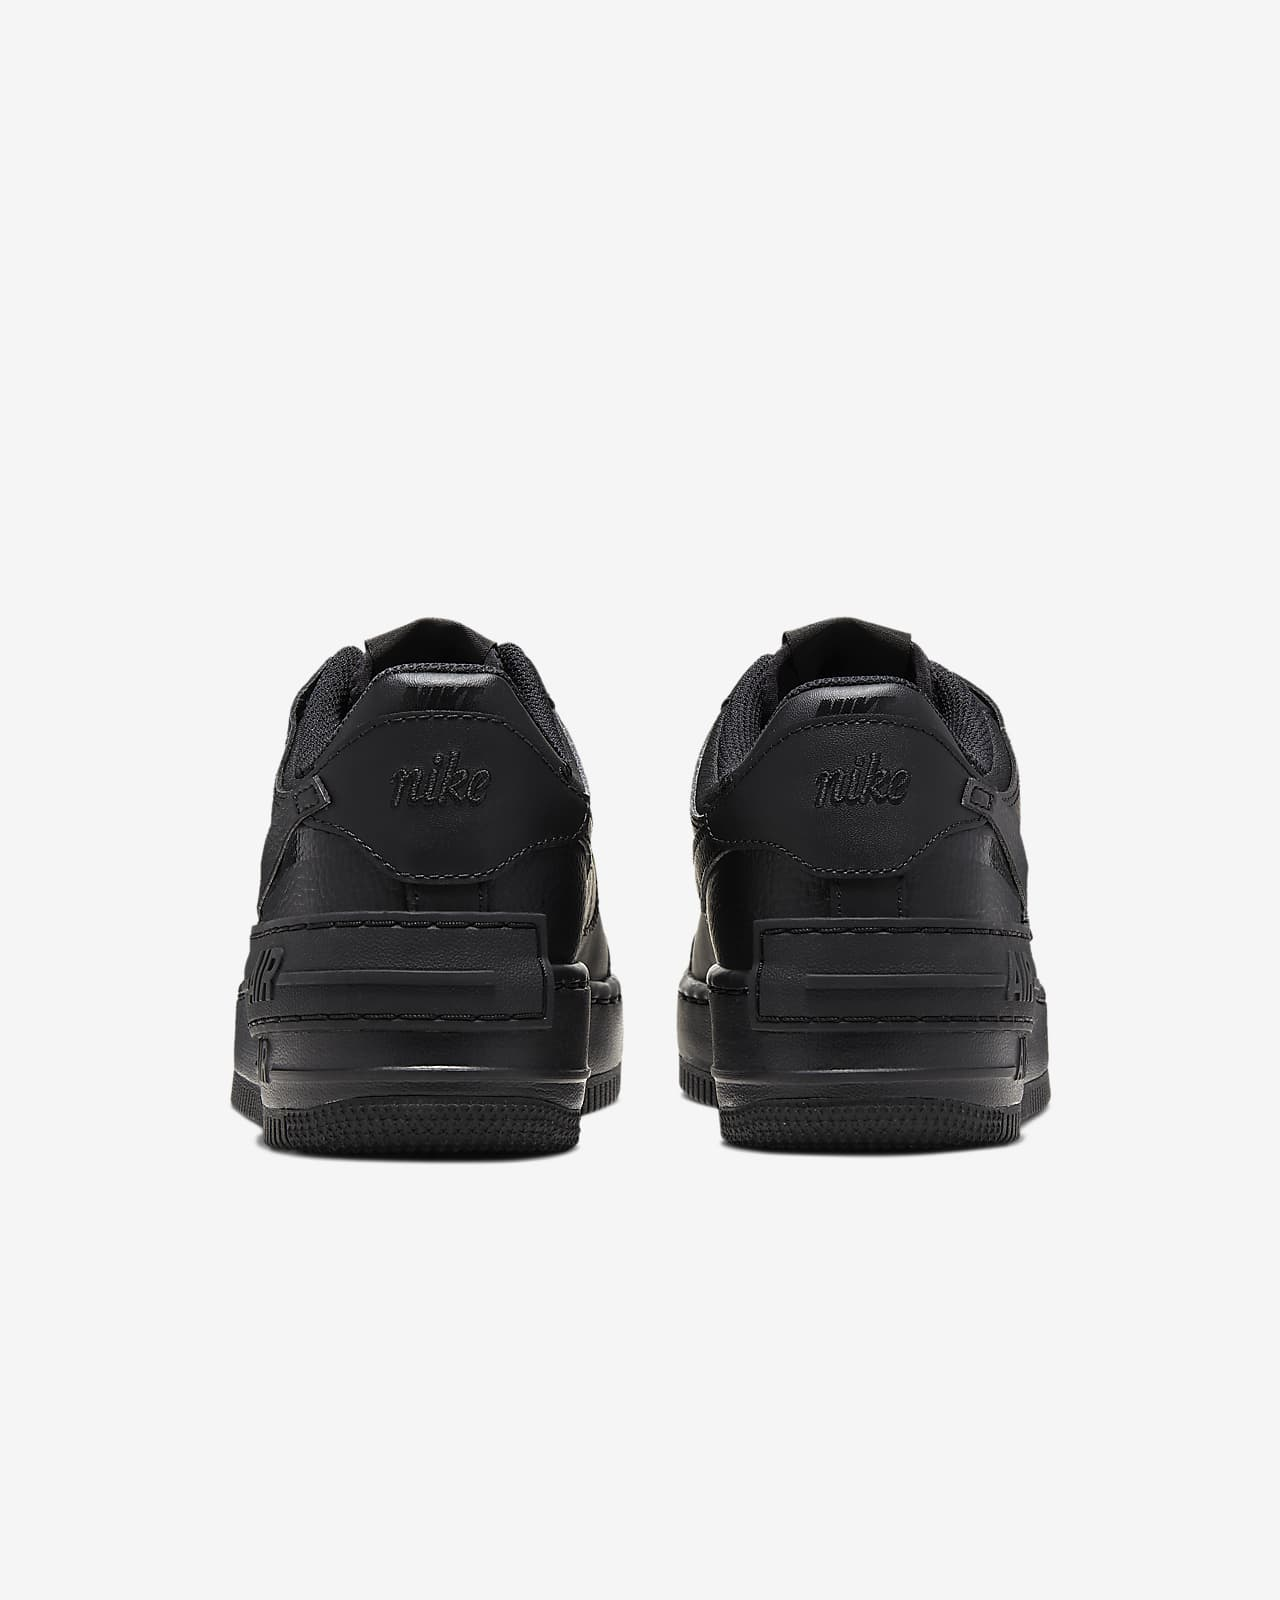 Nike Air Force 1 Shadow Women S Shoe Nike Si Nike air force one af1 uptowns men's low top classic all black size 9.5. nike air force 1 shadow women s shoe